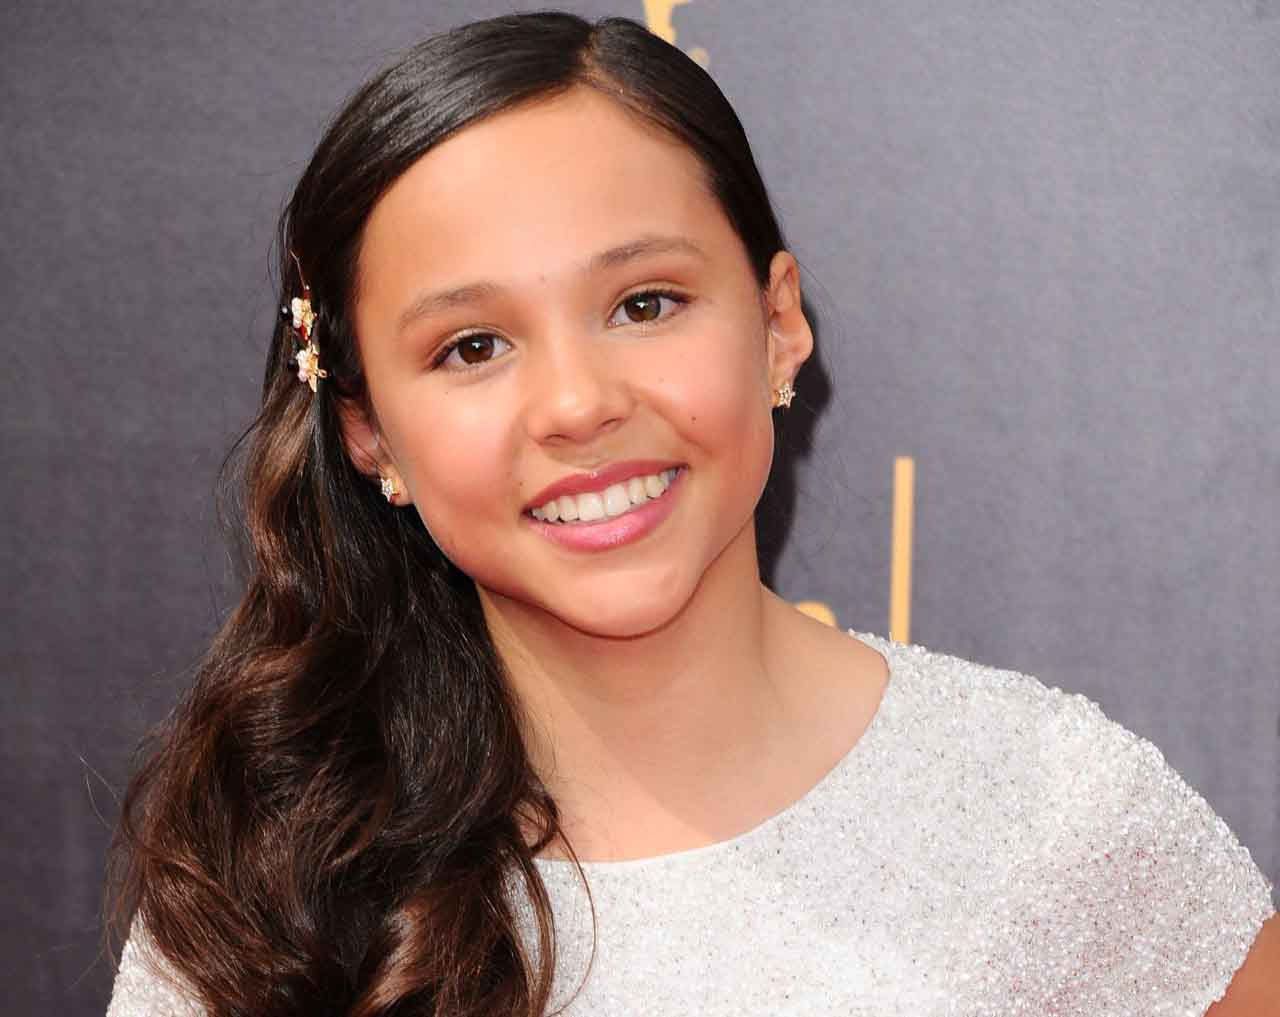 Breanna yde bio birthday height weight net worth career breanna yde bio birthday height weight net worth career ethnicity movies nationality fact career altavistaventures Image collections